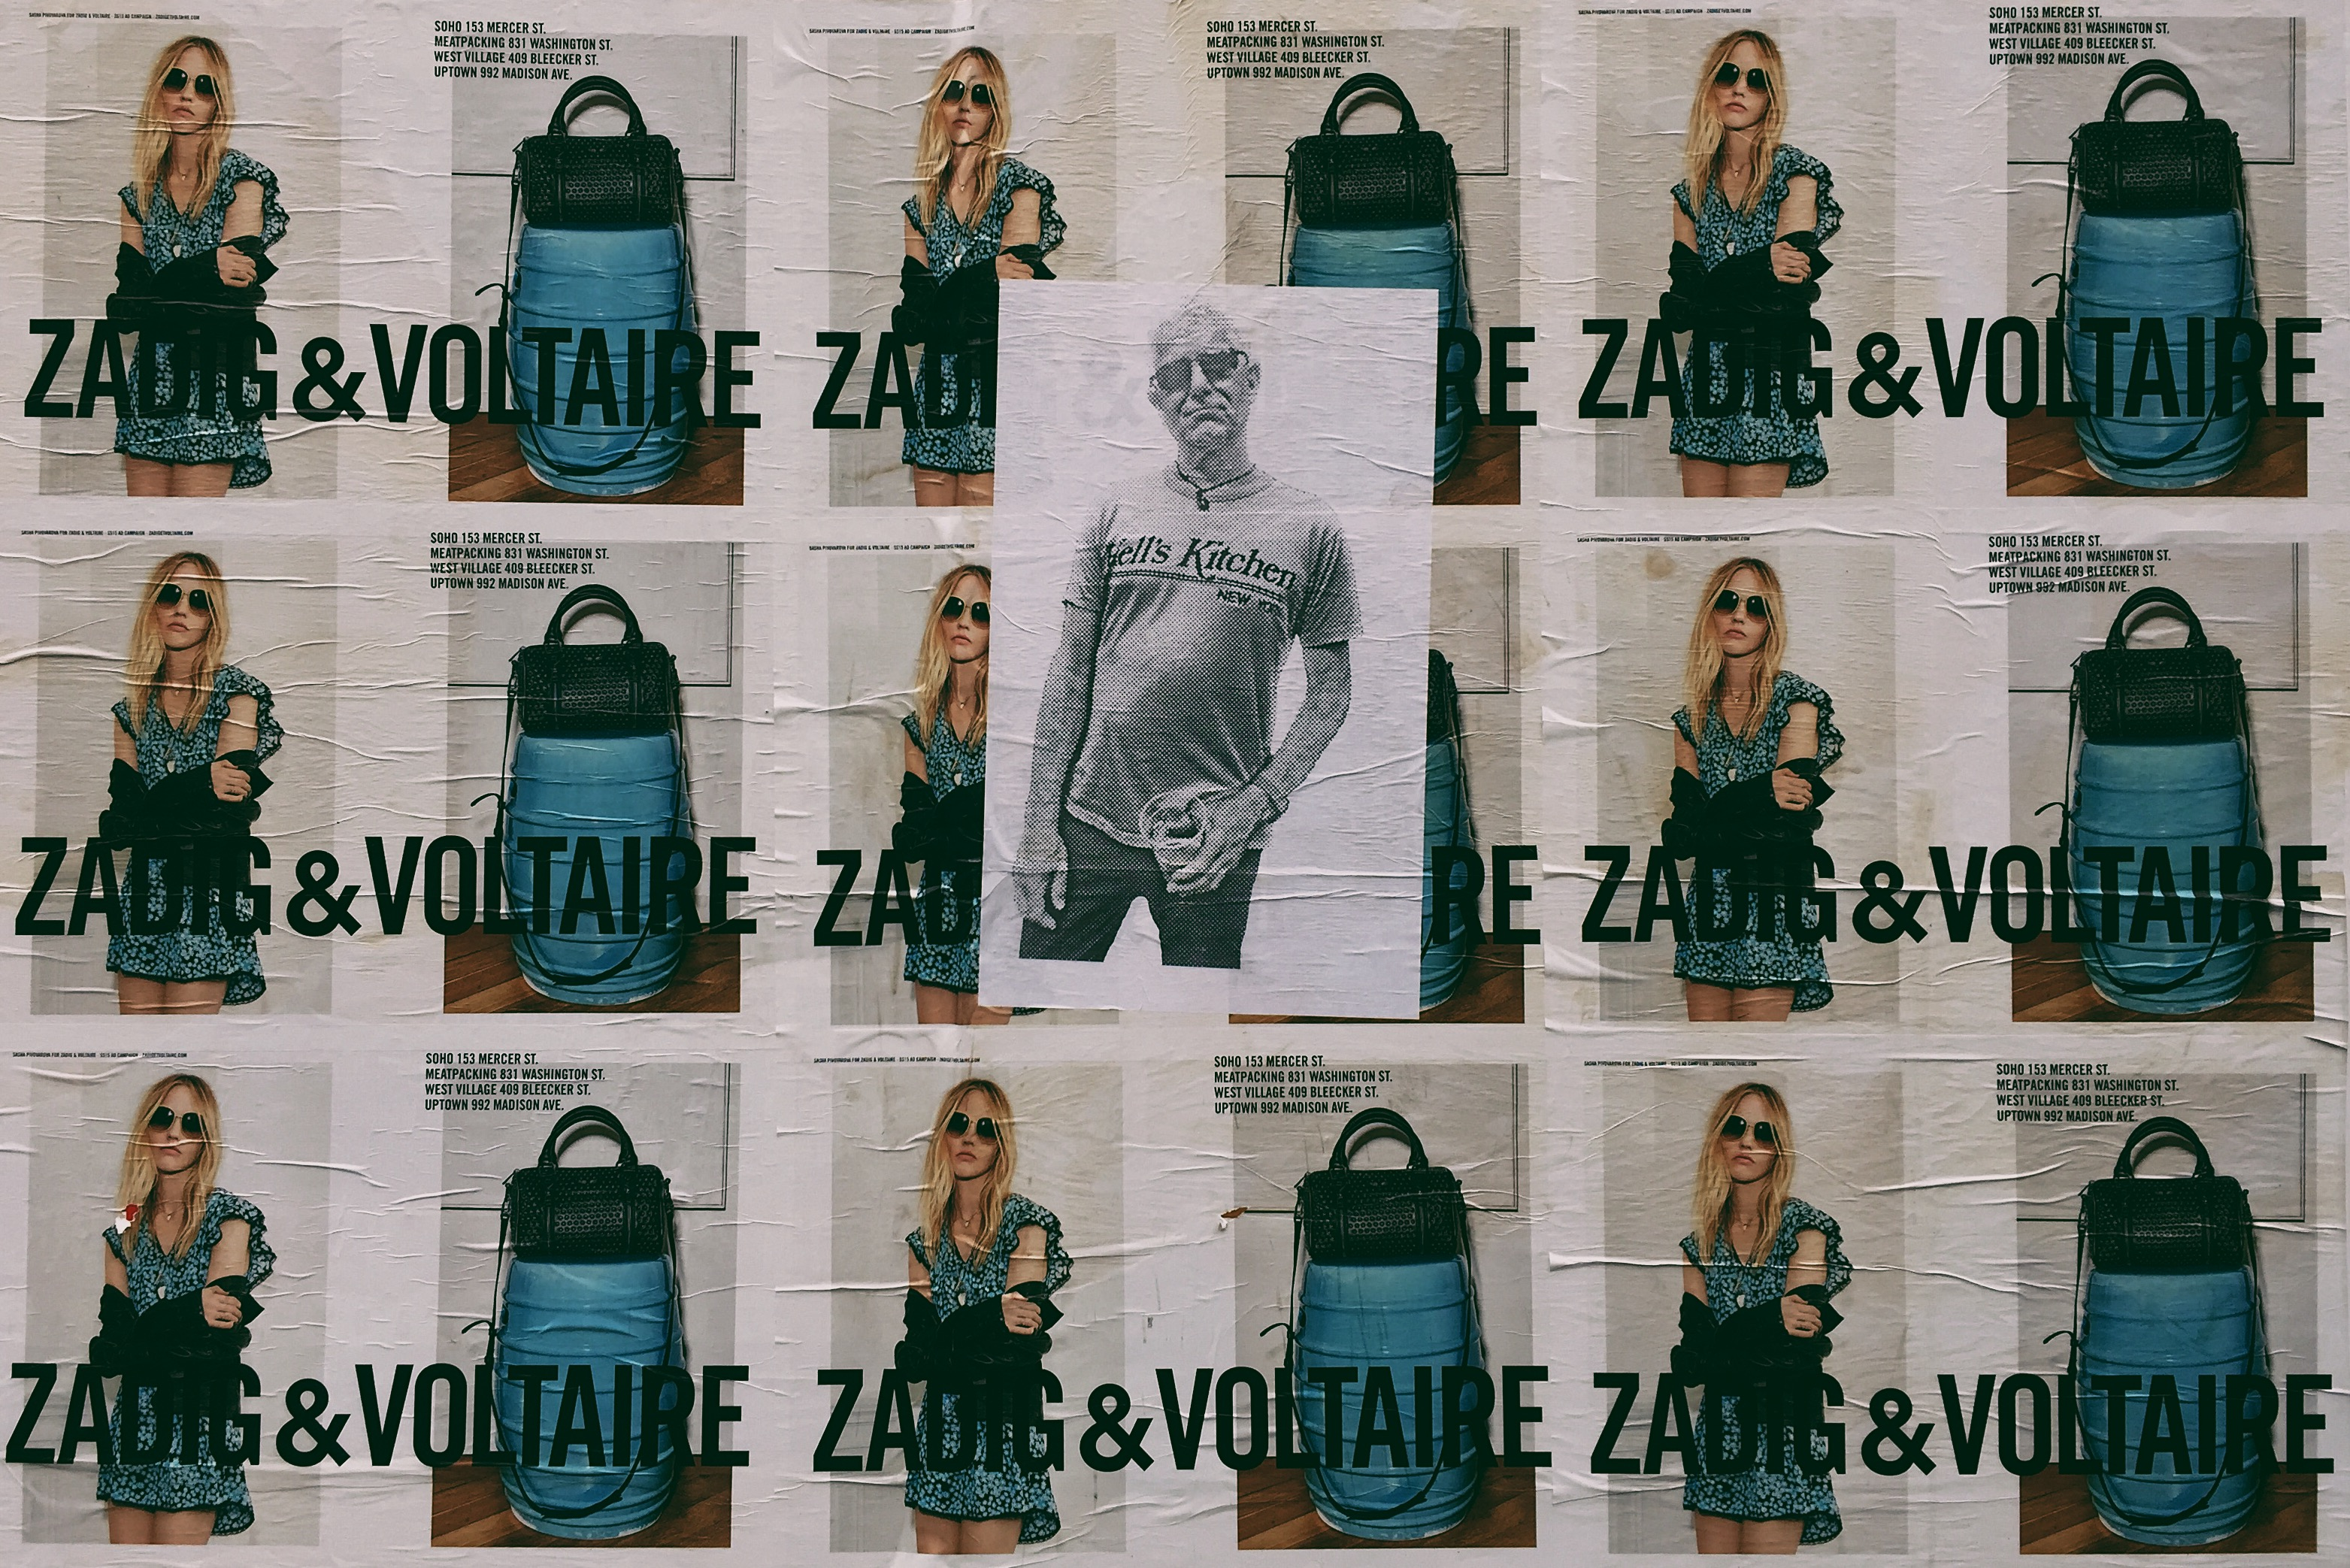 women's black leather 2-way bag collage with text overlay